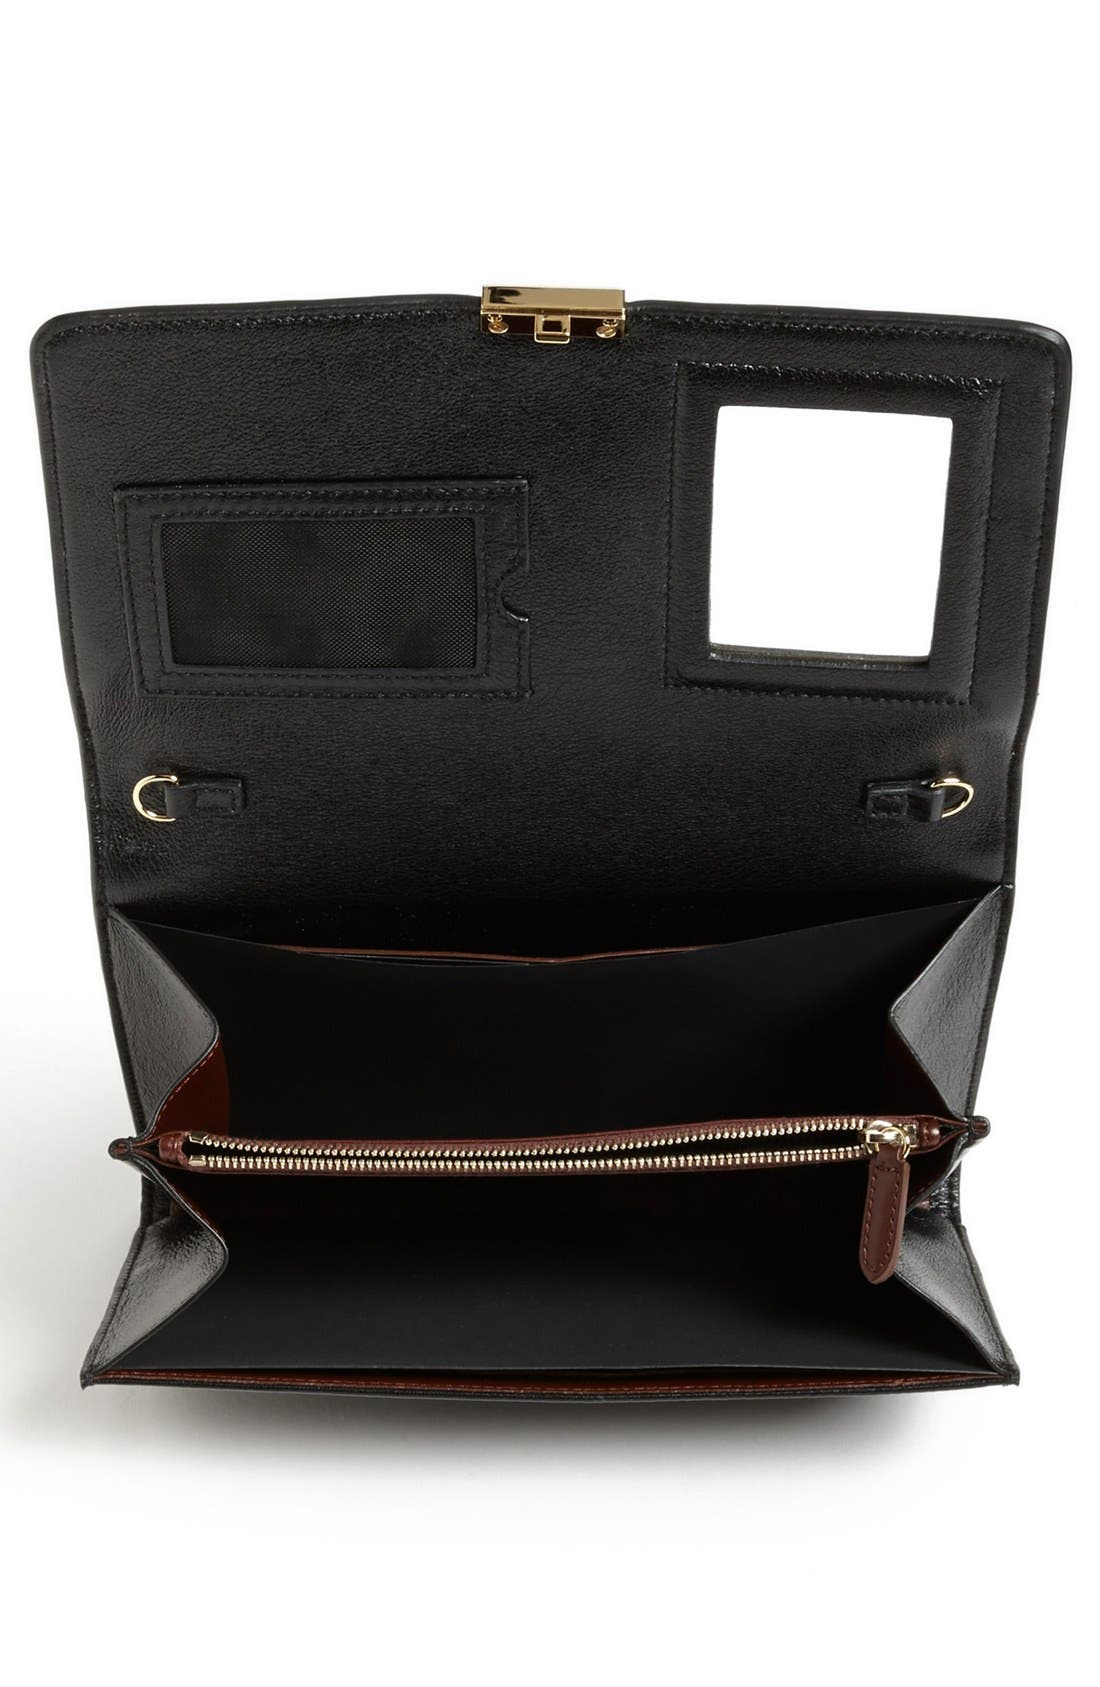 MARC JACOBS,                             'Checkers' All-In-One Leather Crossbody Bag,                             Alternate thumbnail 2, color,                             002